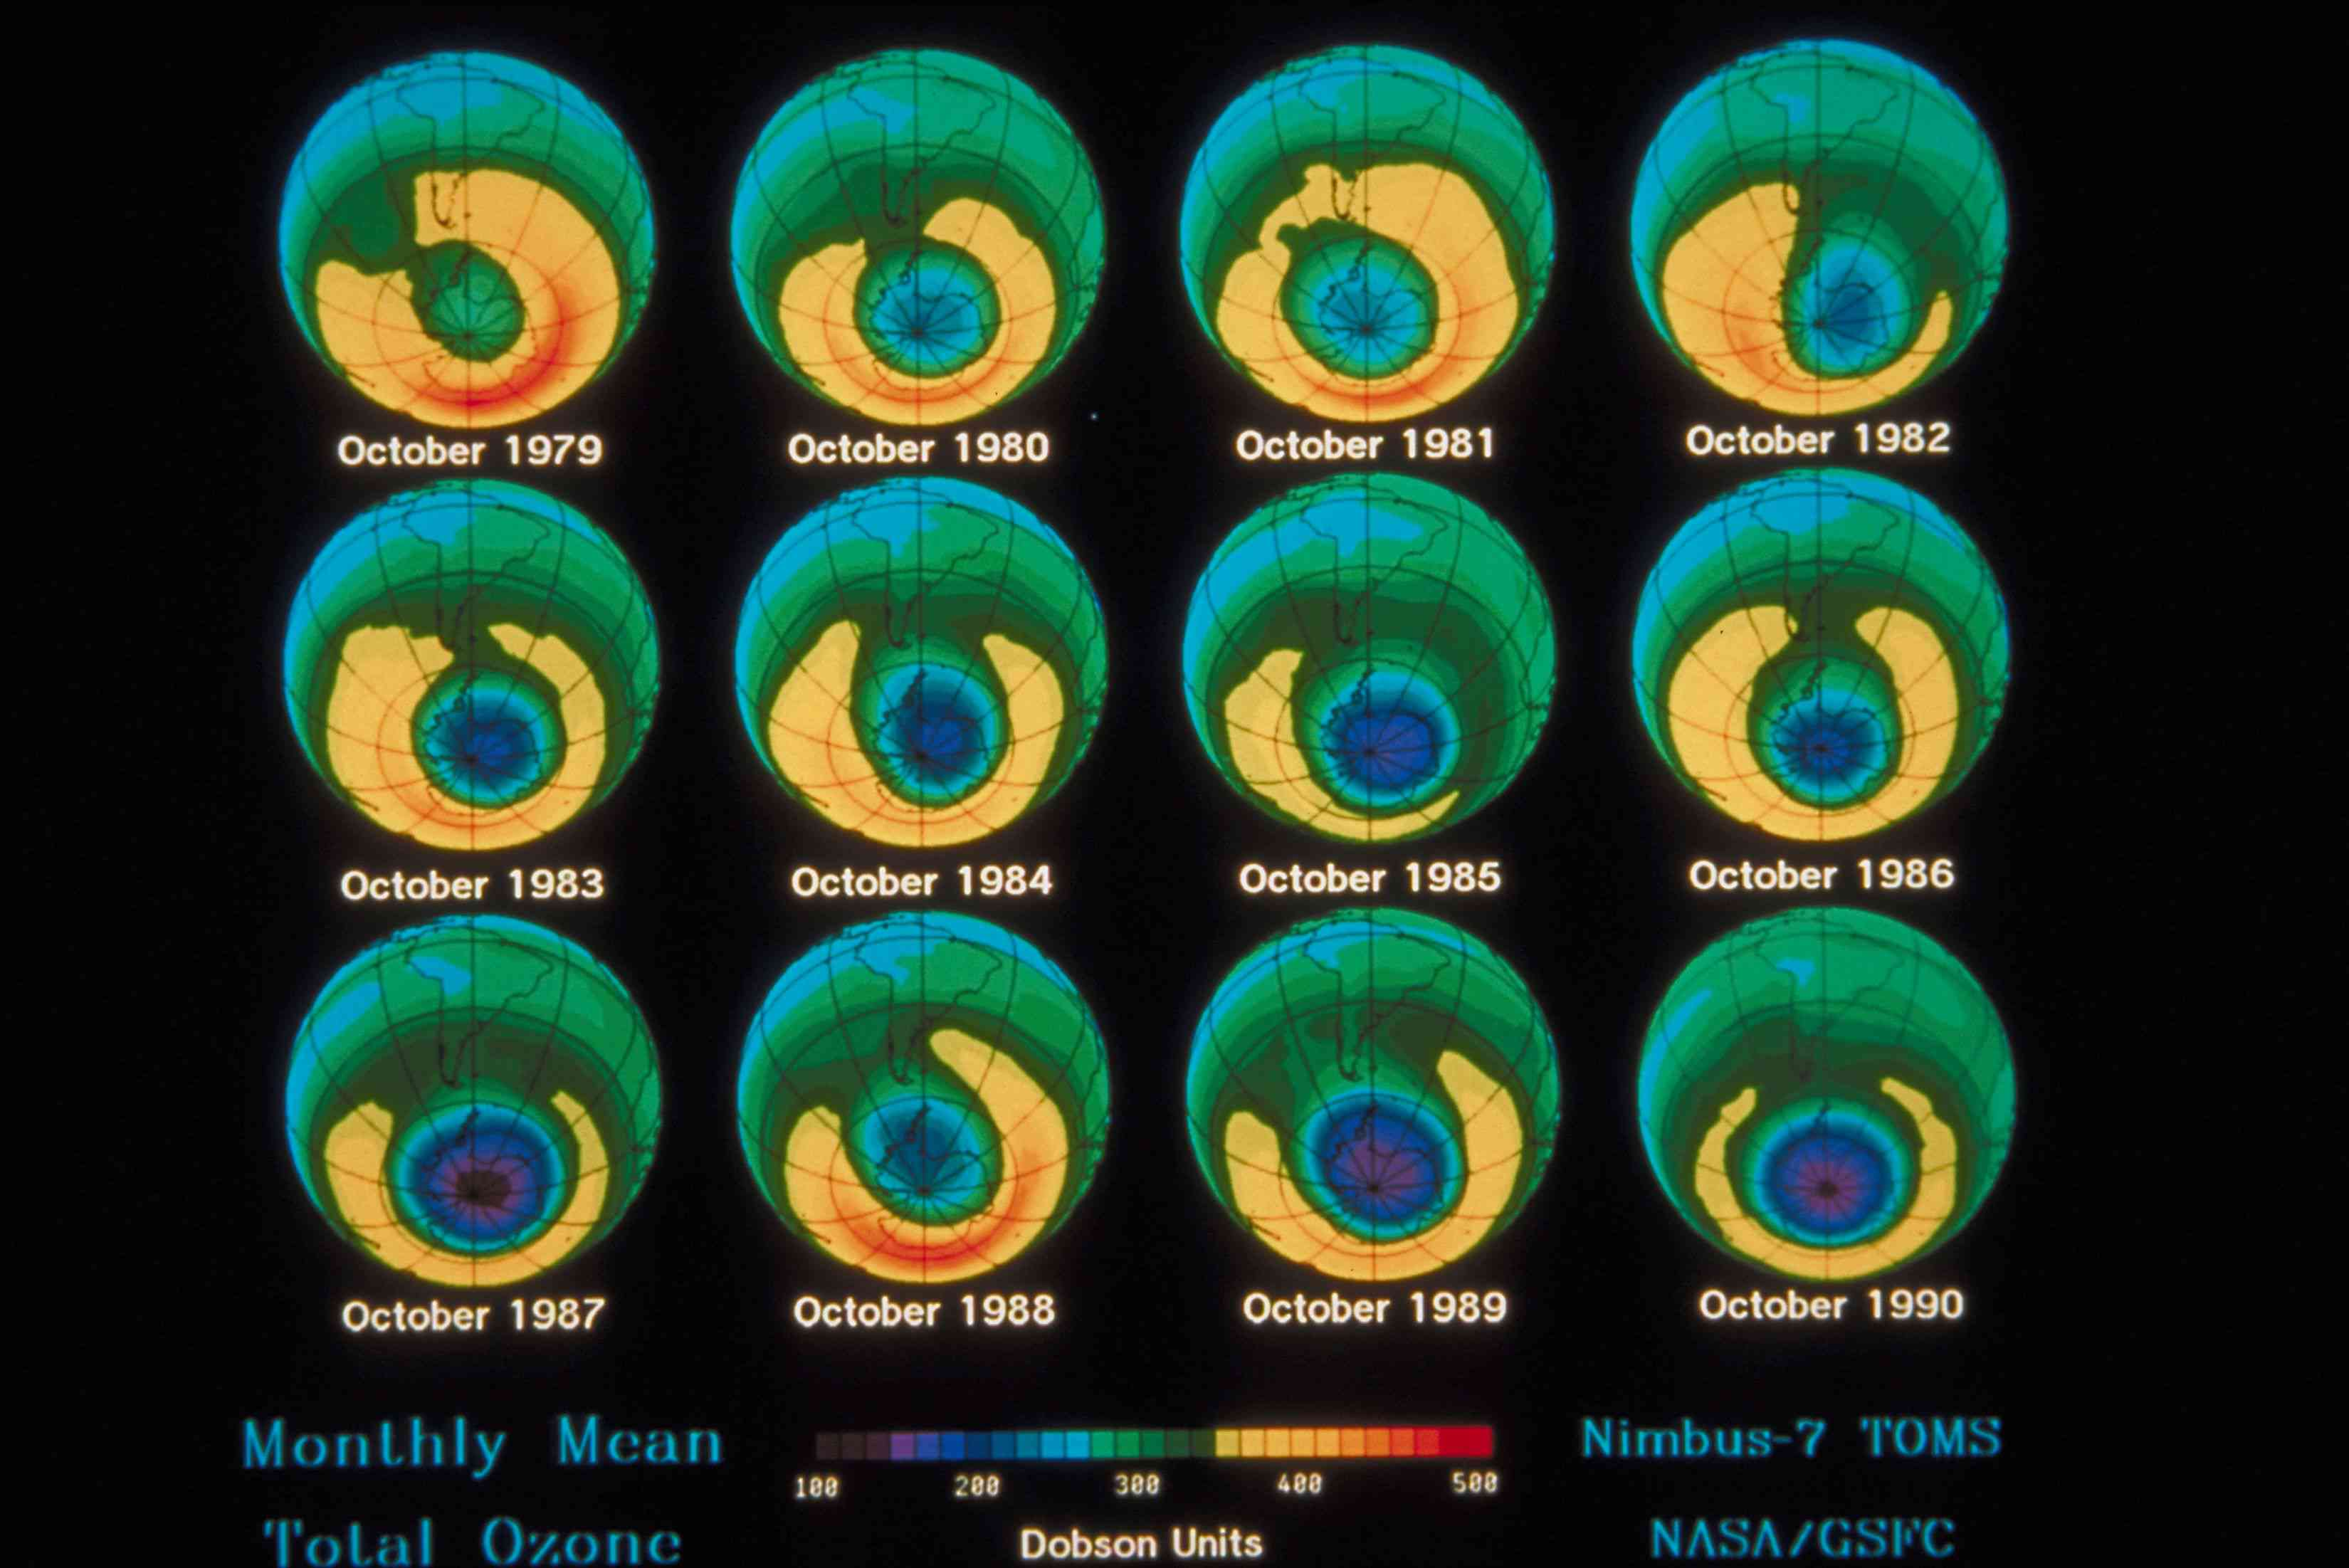 Yearly evolution of the whole in the ozone layer